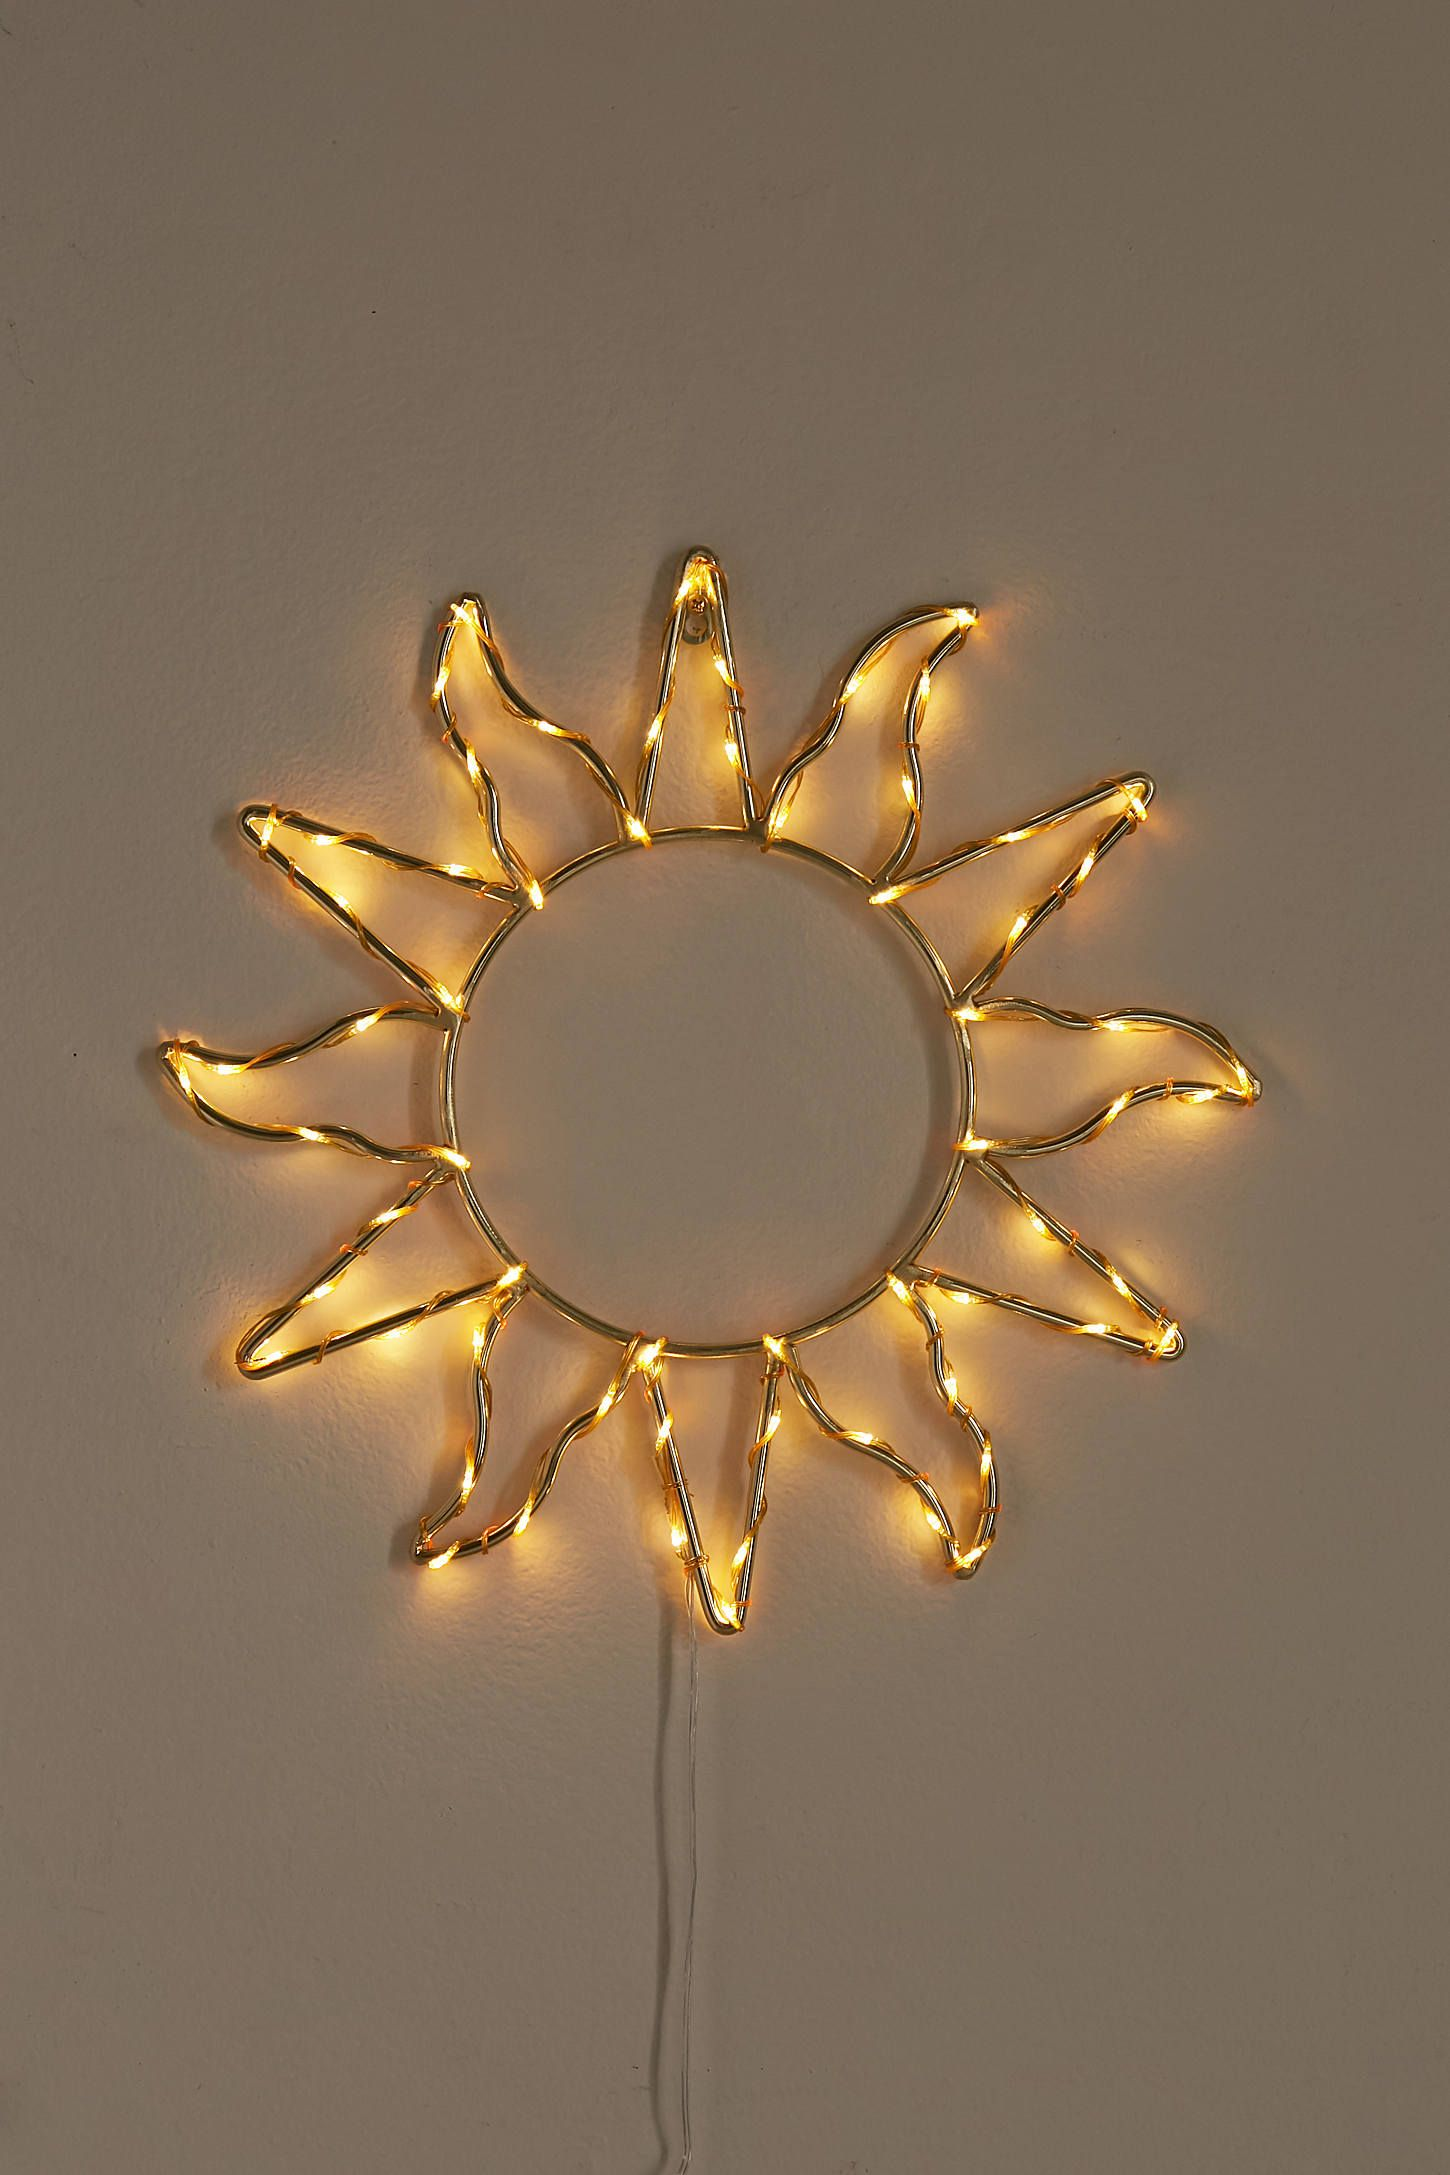 Celestial Sun Light Sculpture Celestial Sun Light